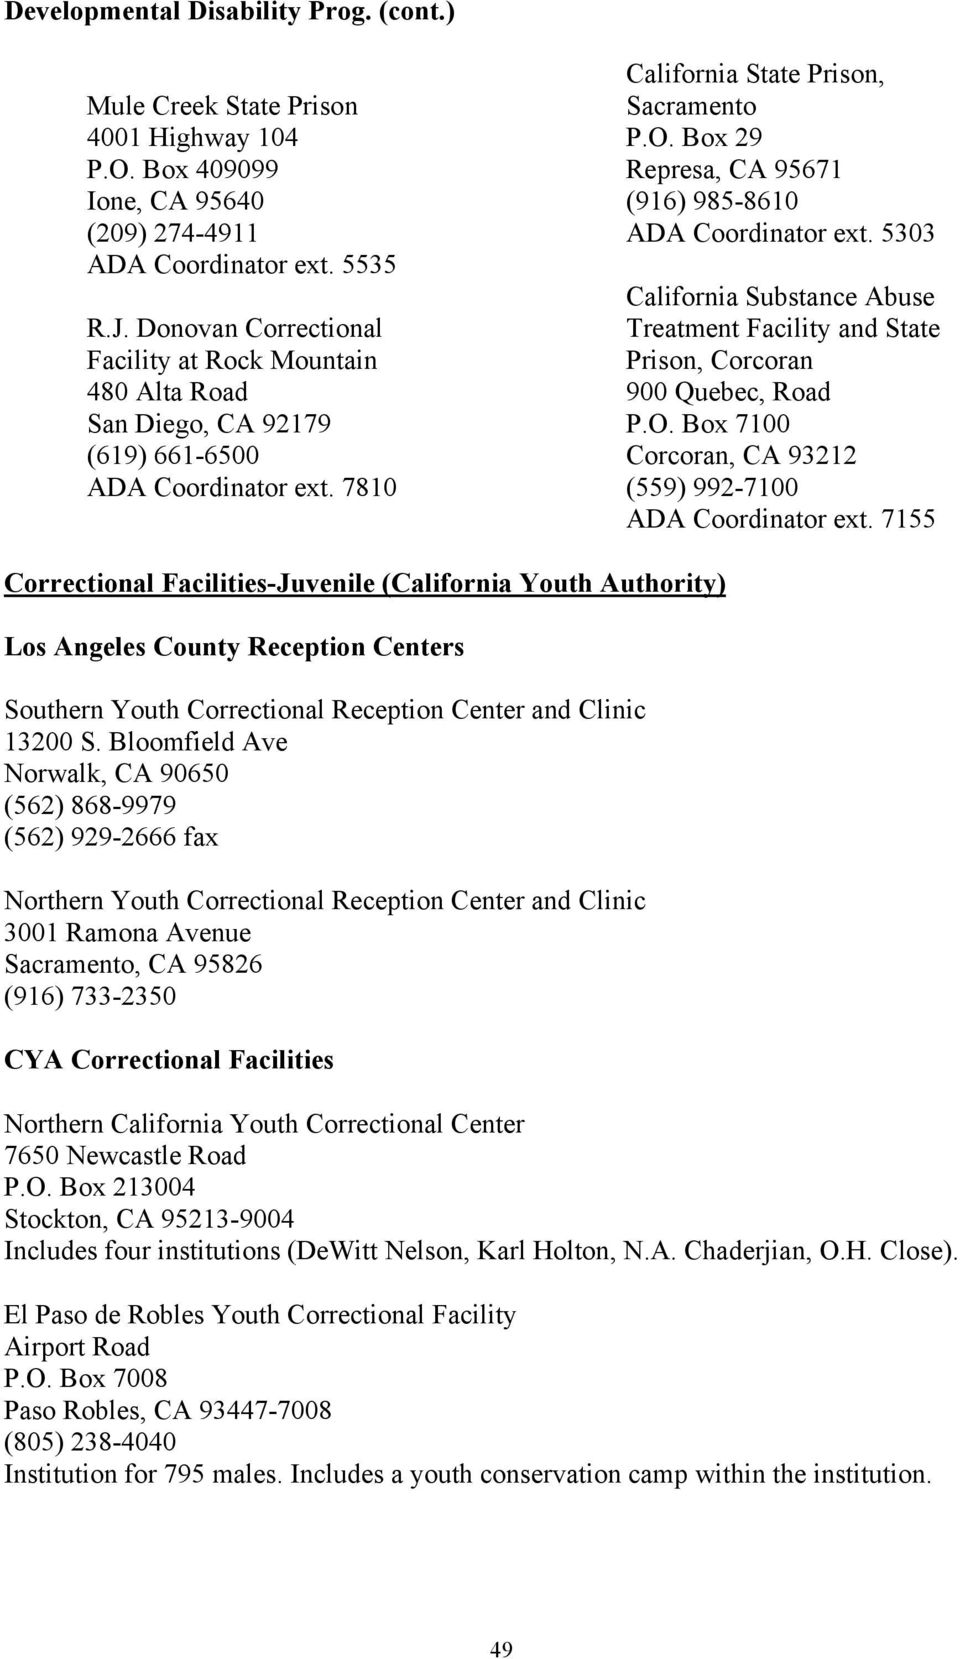 Box 29 Represa, CA 95671 (916) 985-8610 ADA Coordinator ext. 5303 California Substance Abuse Treatment Facility and State Prison, Corcoran 900 Quebec, Road P.O.